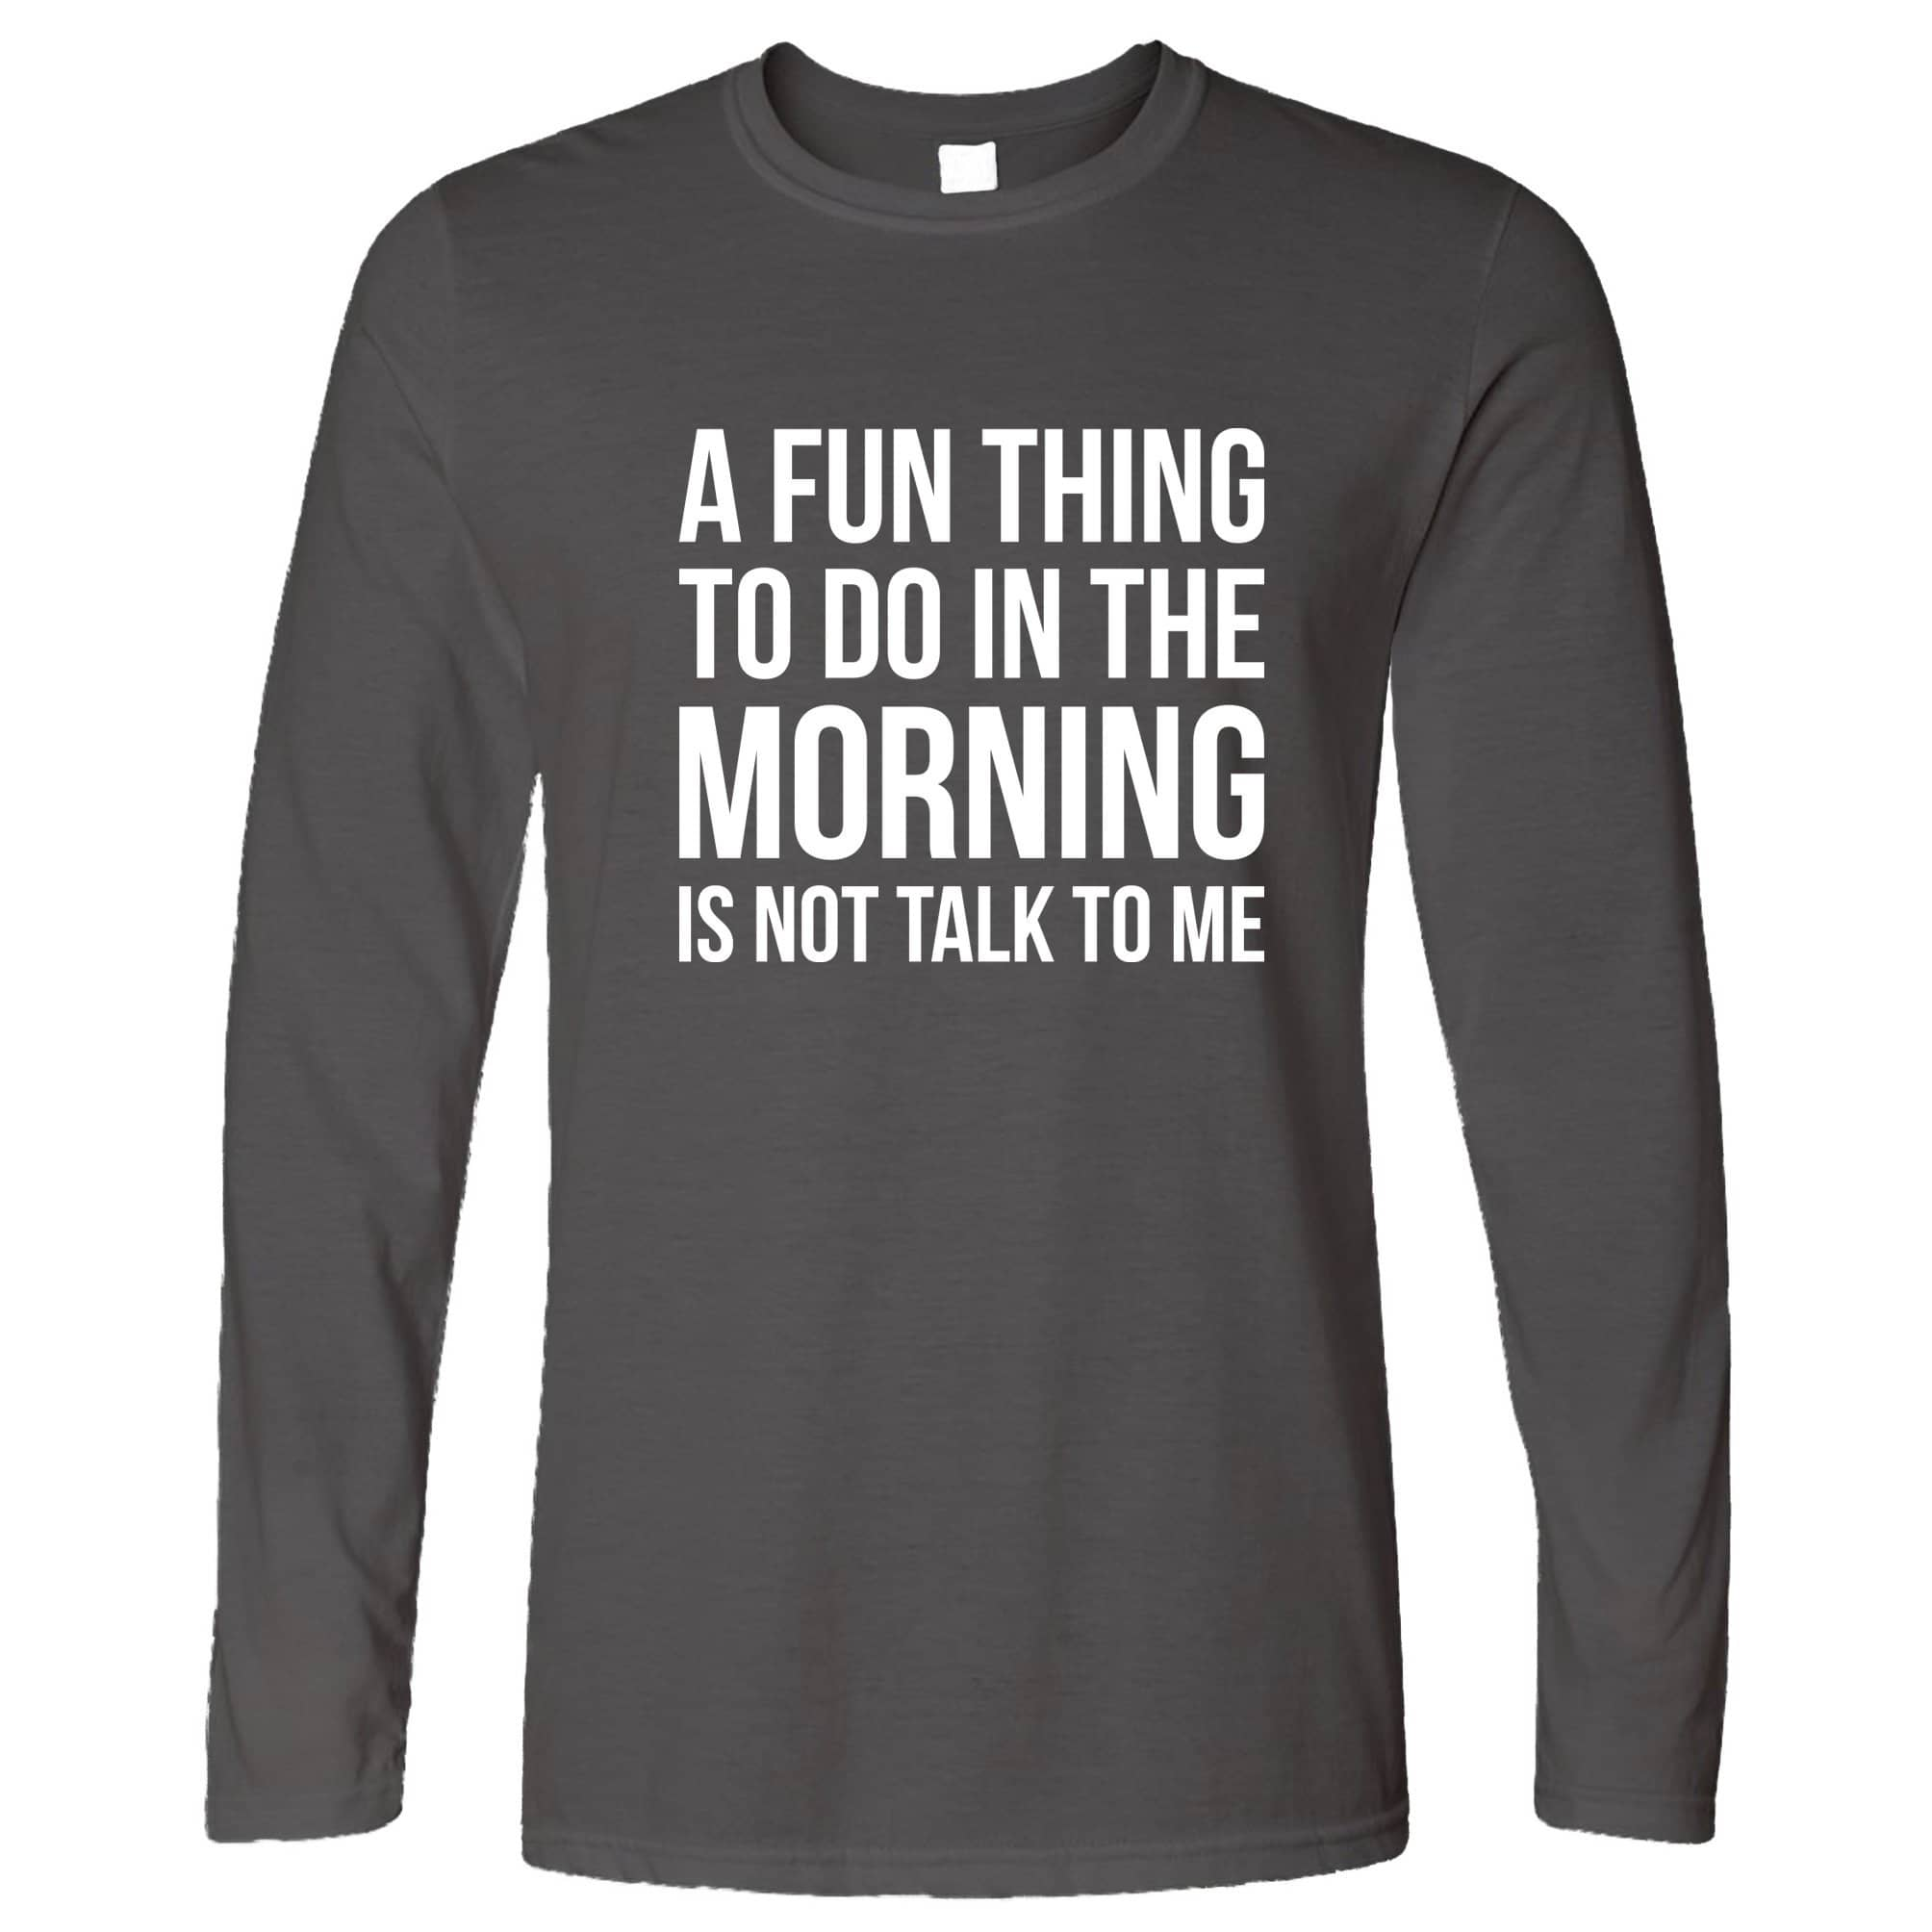 Novelty Long Sleeve A Fun Thing To Do Is Not Talk To Me T-Shirt